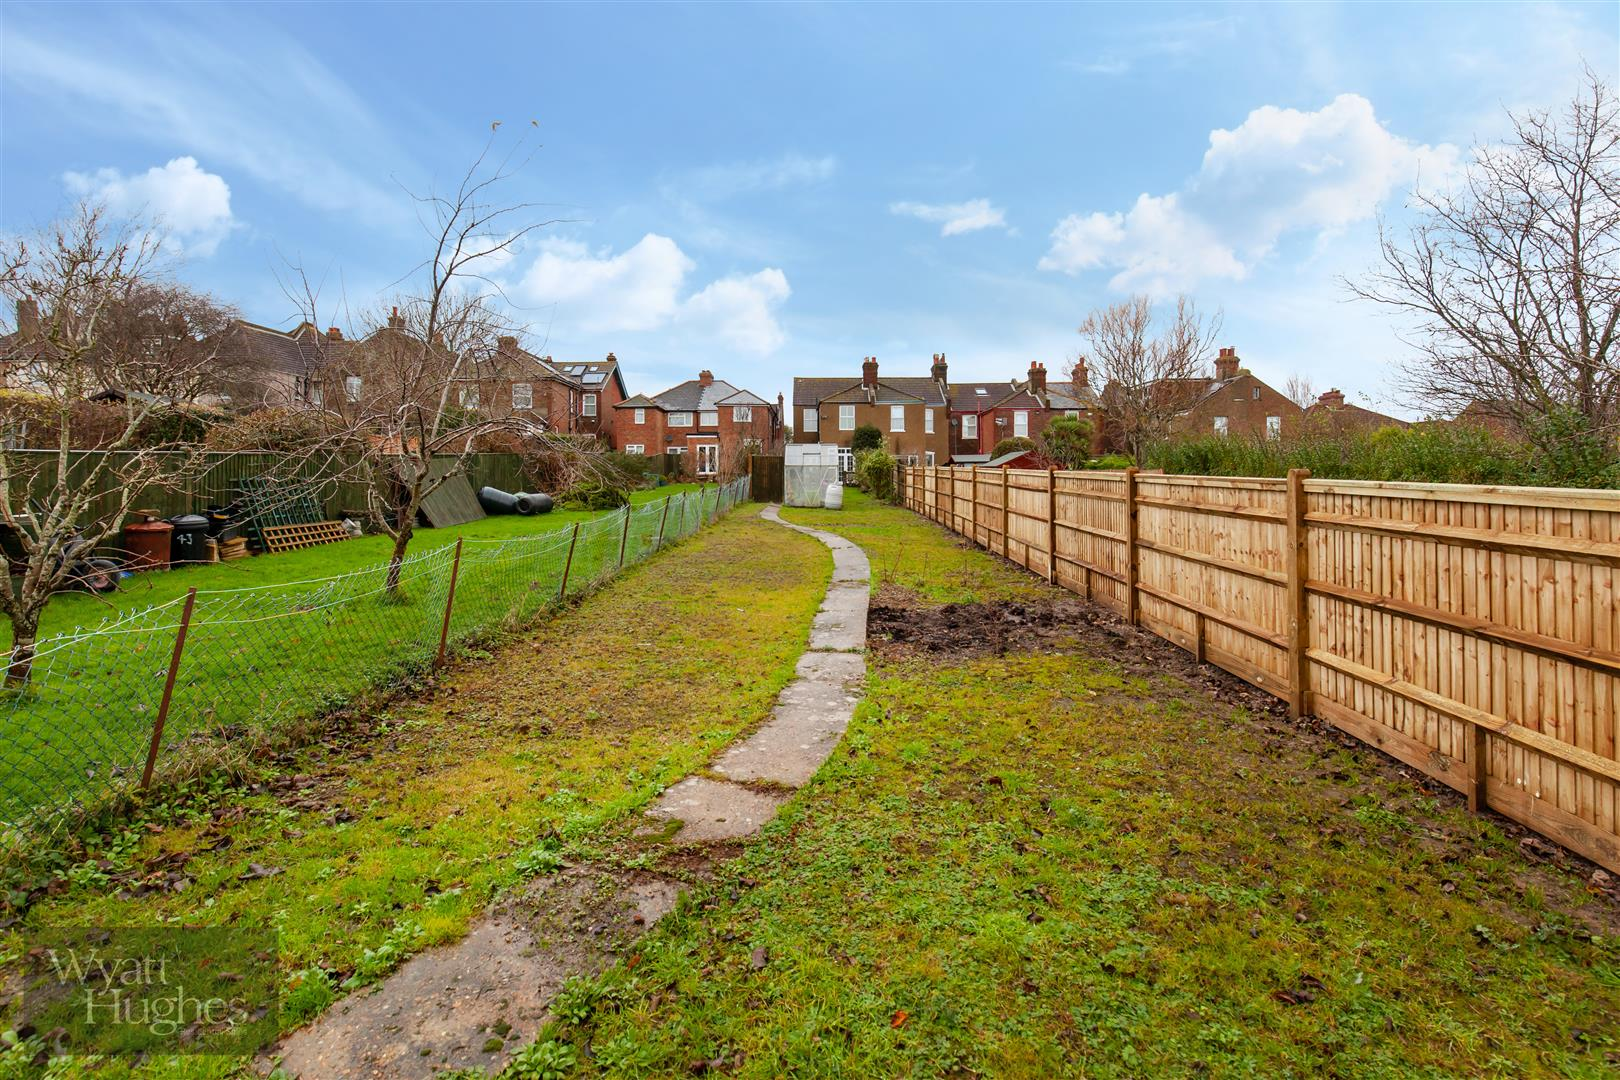 3 bed end-of-terrace-house for sale in Burry Road, St. Leonards-On-Sea  - Property Image 23